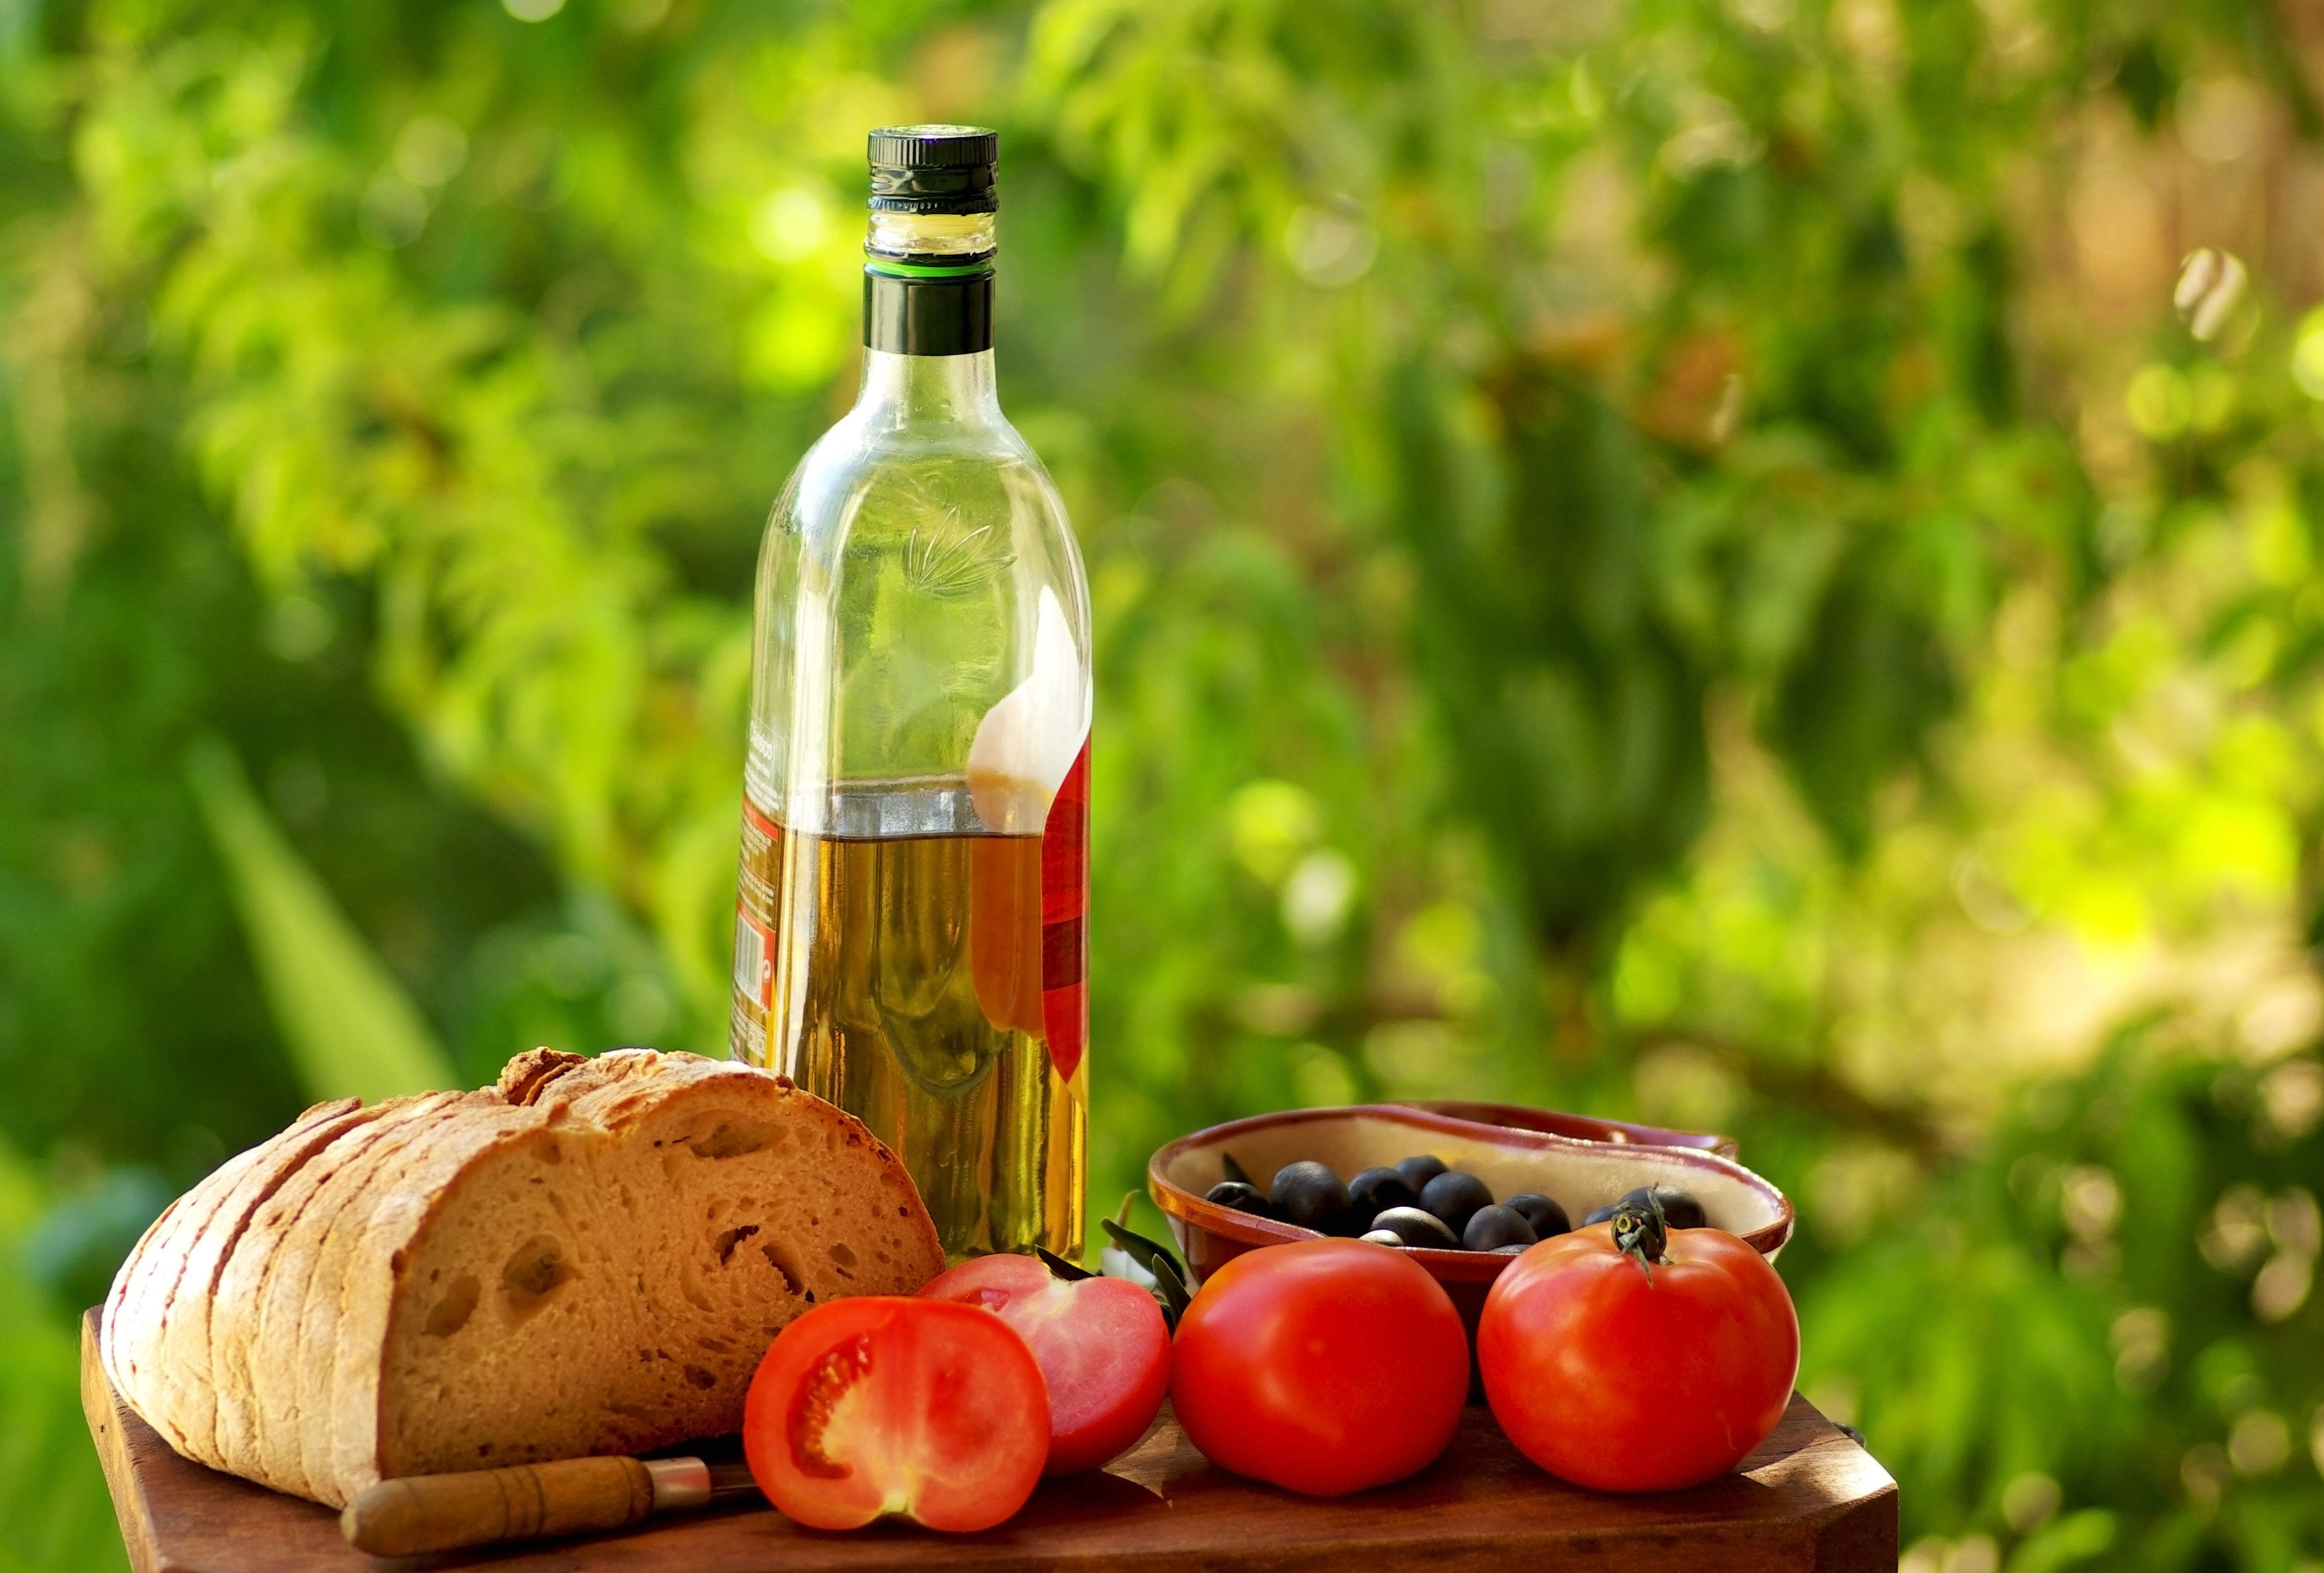 Ditch 'Low-Fat' Food For Mediterranean Diet, Says Weight Loss Study